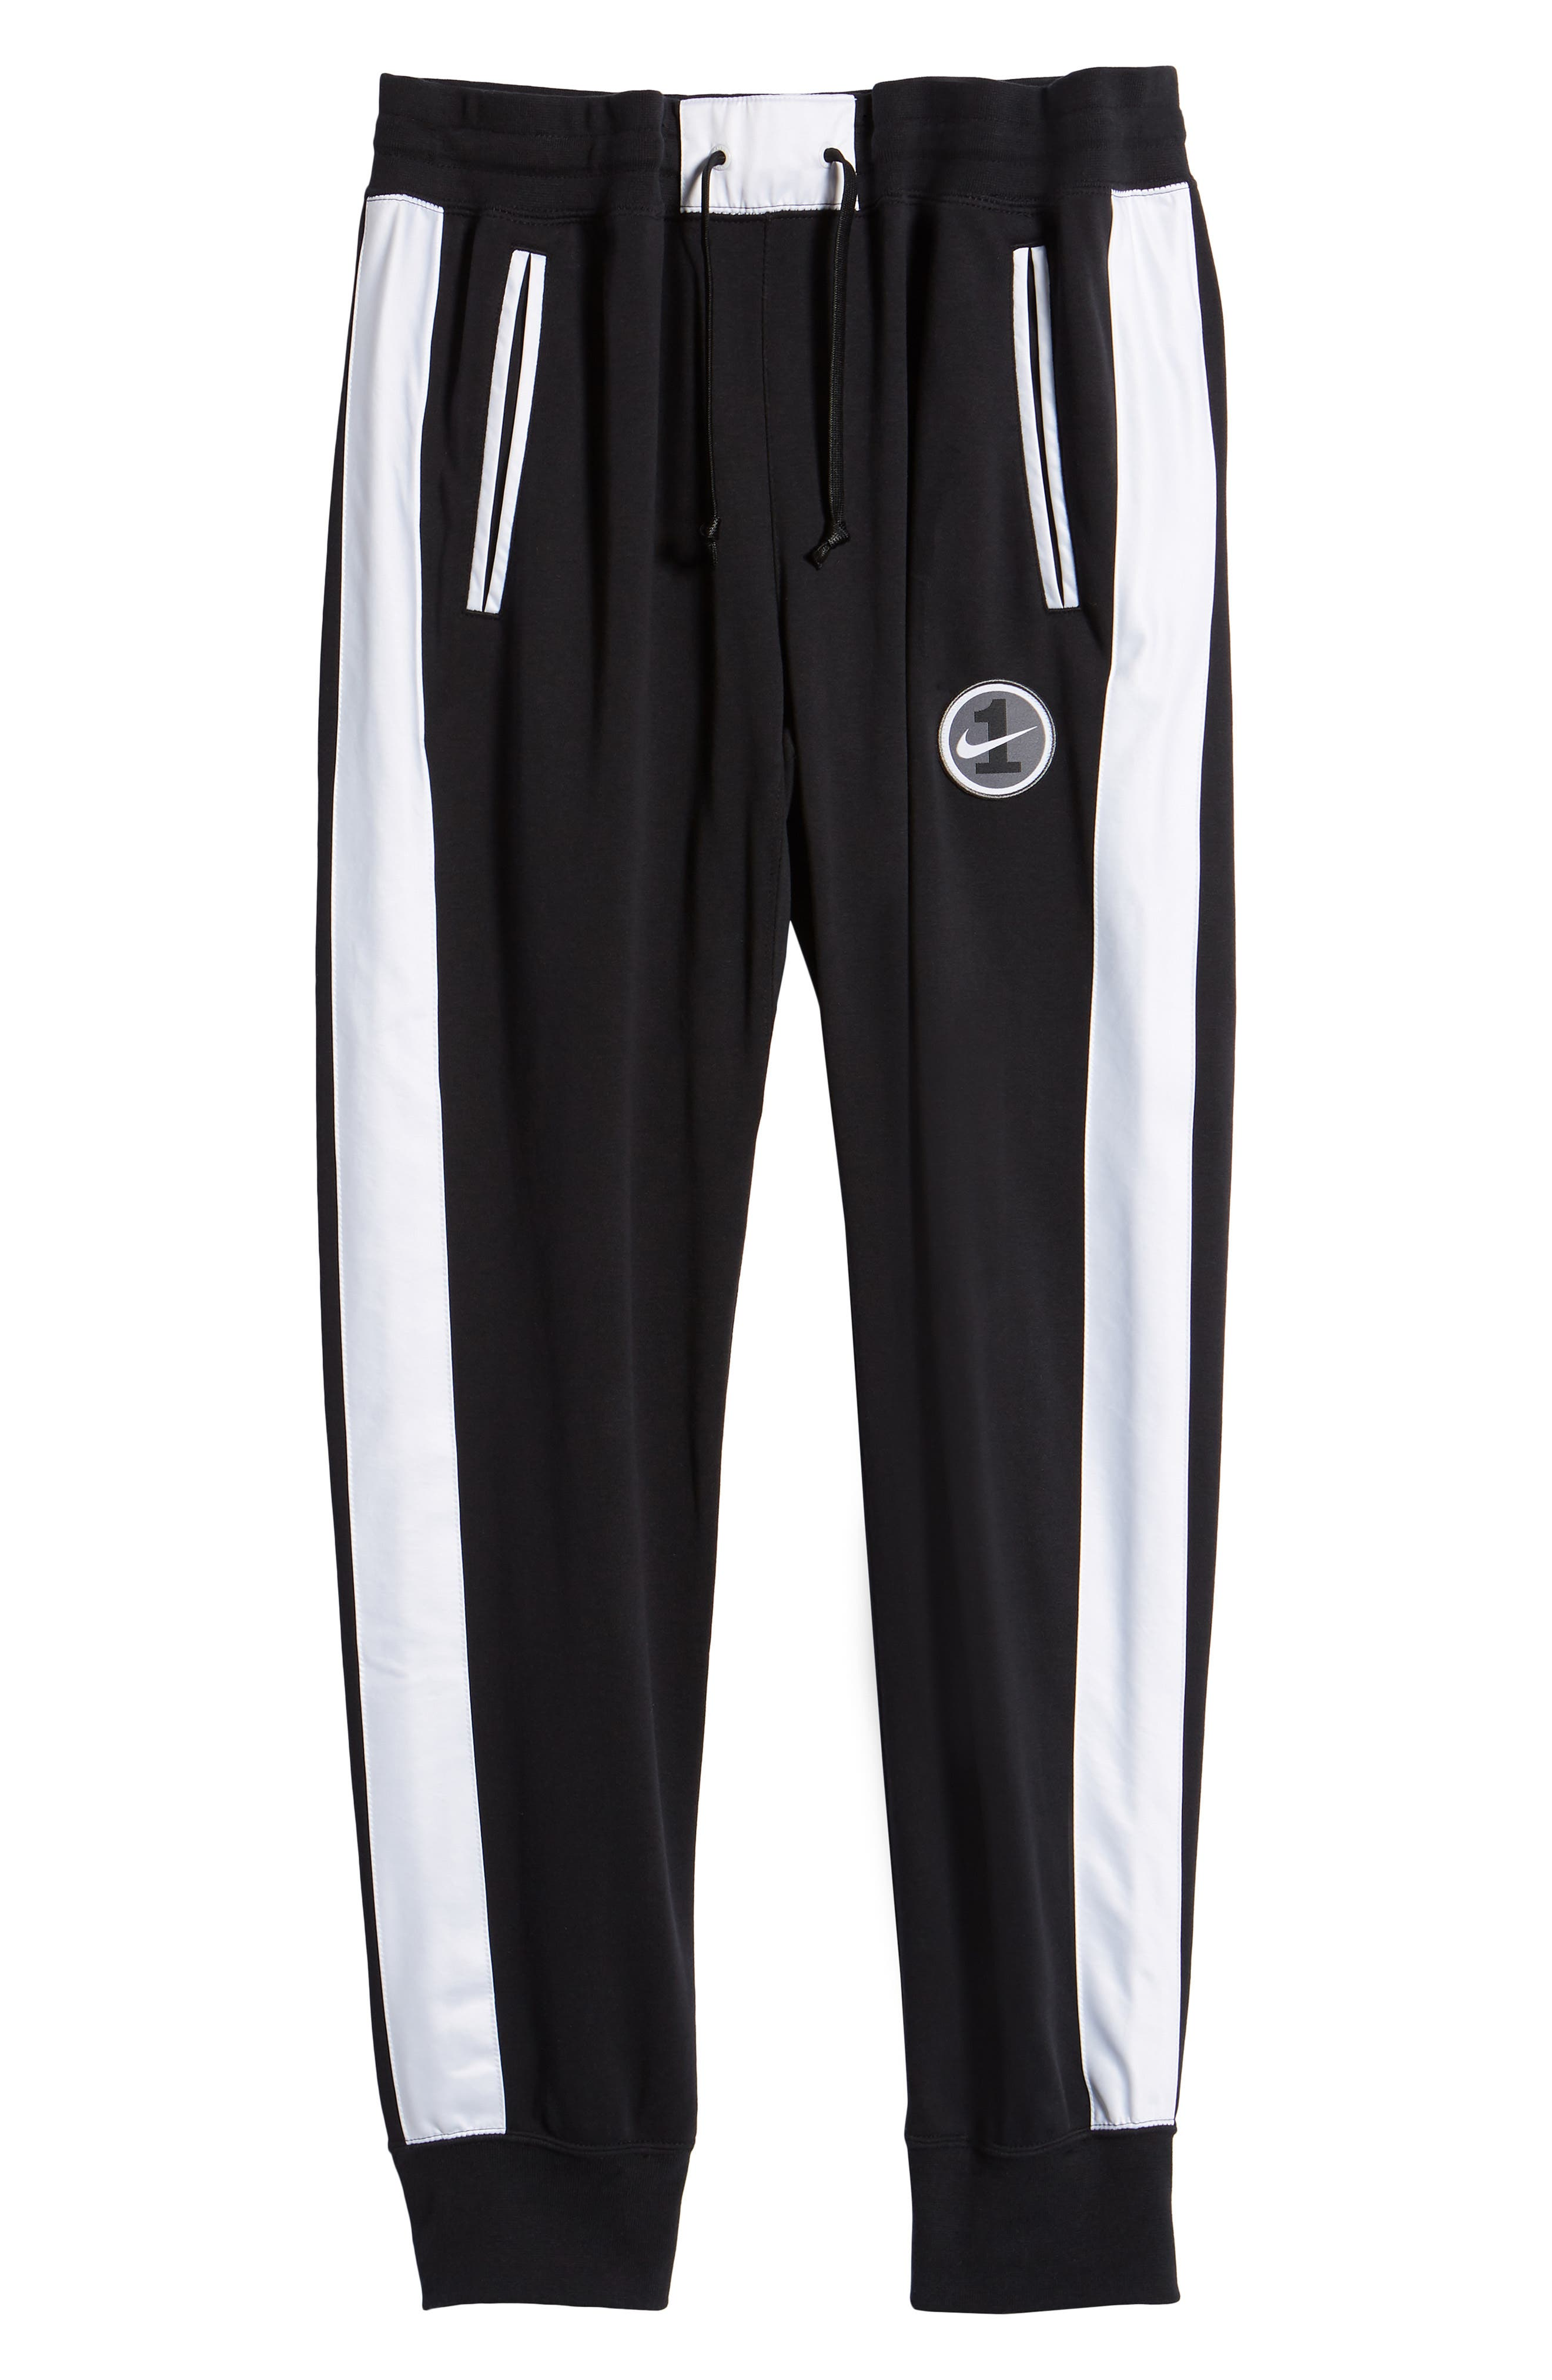 Air Force One Track Pants,                             Alternate thumbnail 6, color,                             010